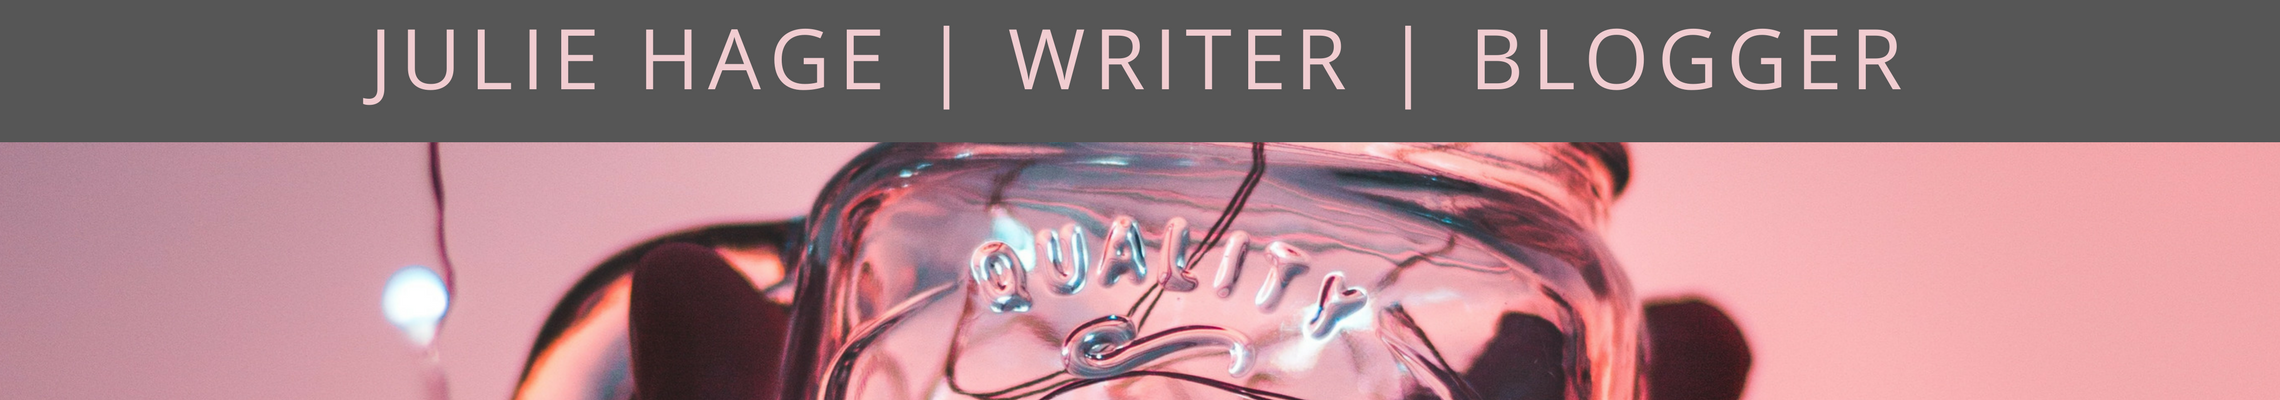 julie hage writer blogger blog header no tagline